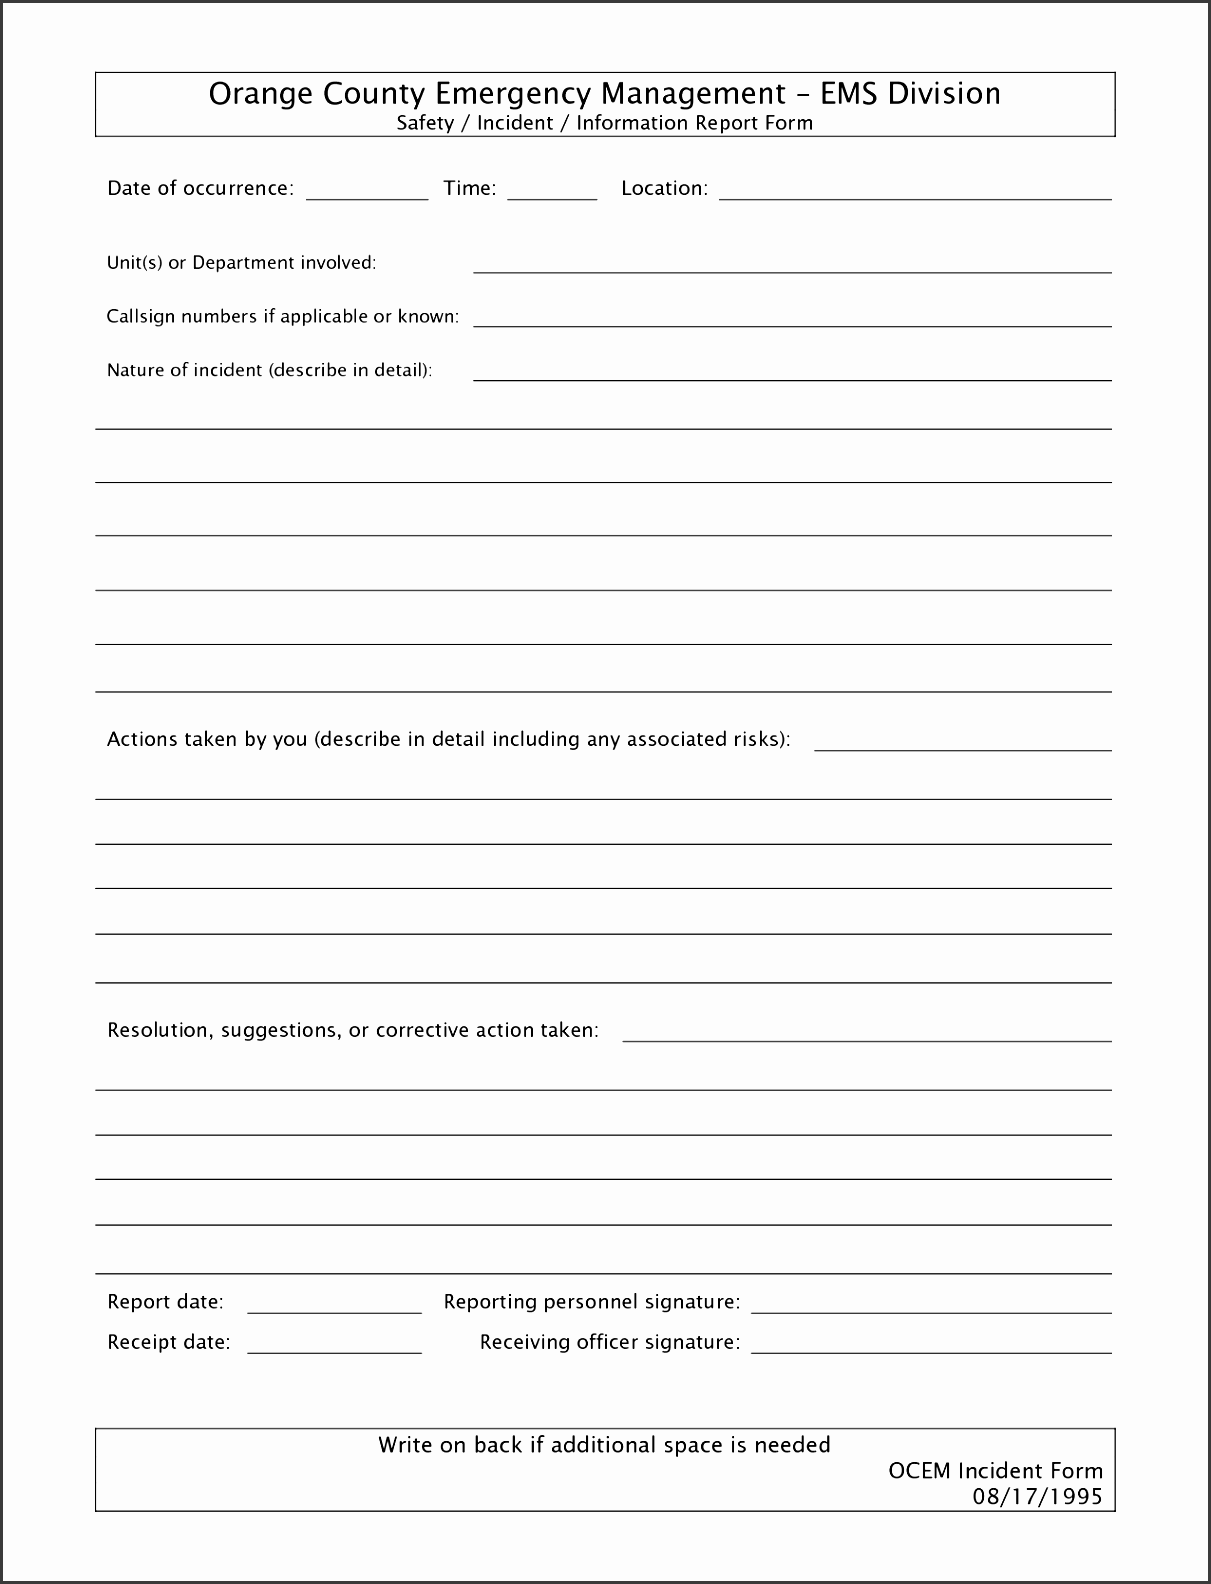 10 Crime Incident Report Template SampleTemplatess Crime Incident Report  Template Wkeln Inspirational Free Incident Report Form Template Word Free  Printable ...  Free Incident Report Template